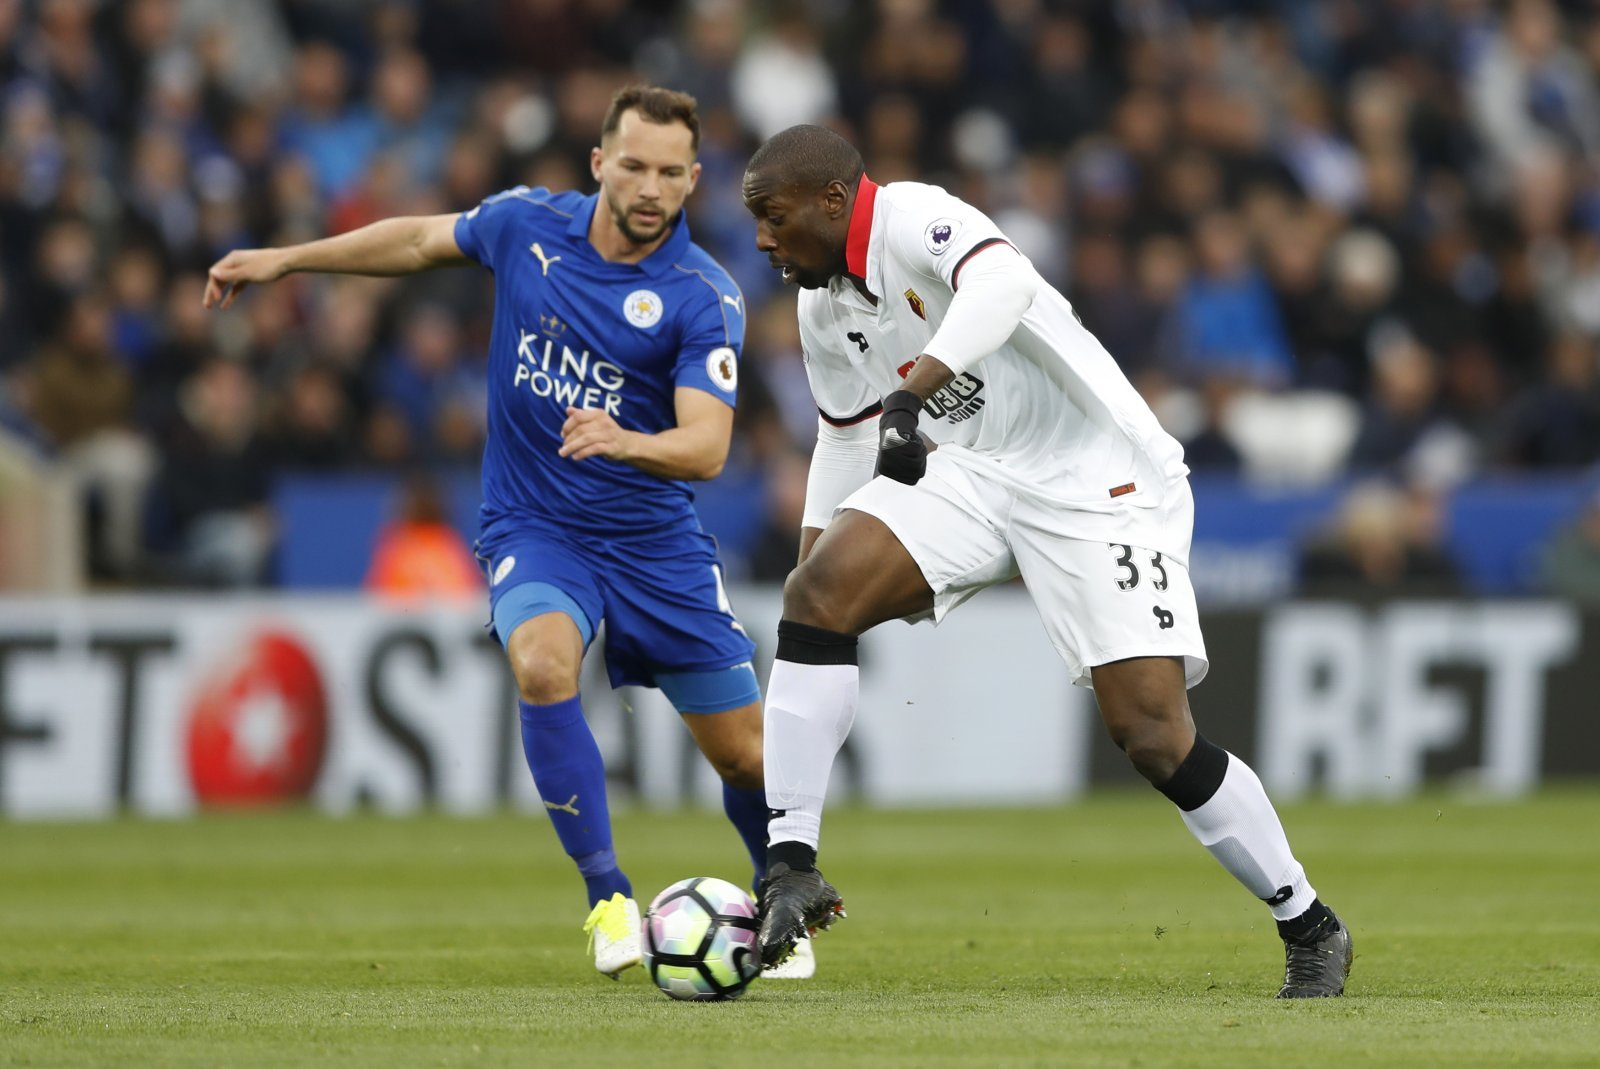 Newcastle need to drop any interest in Danny Drinkwater